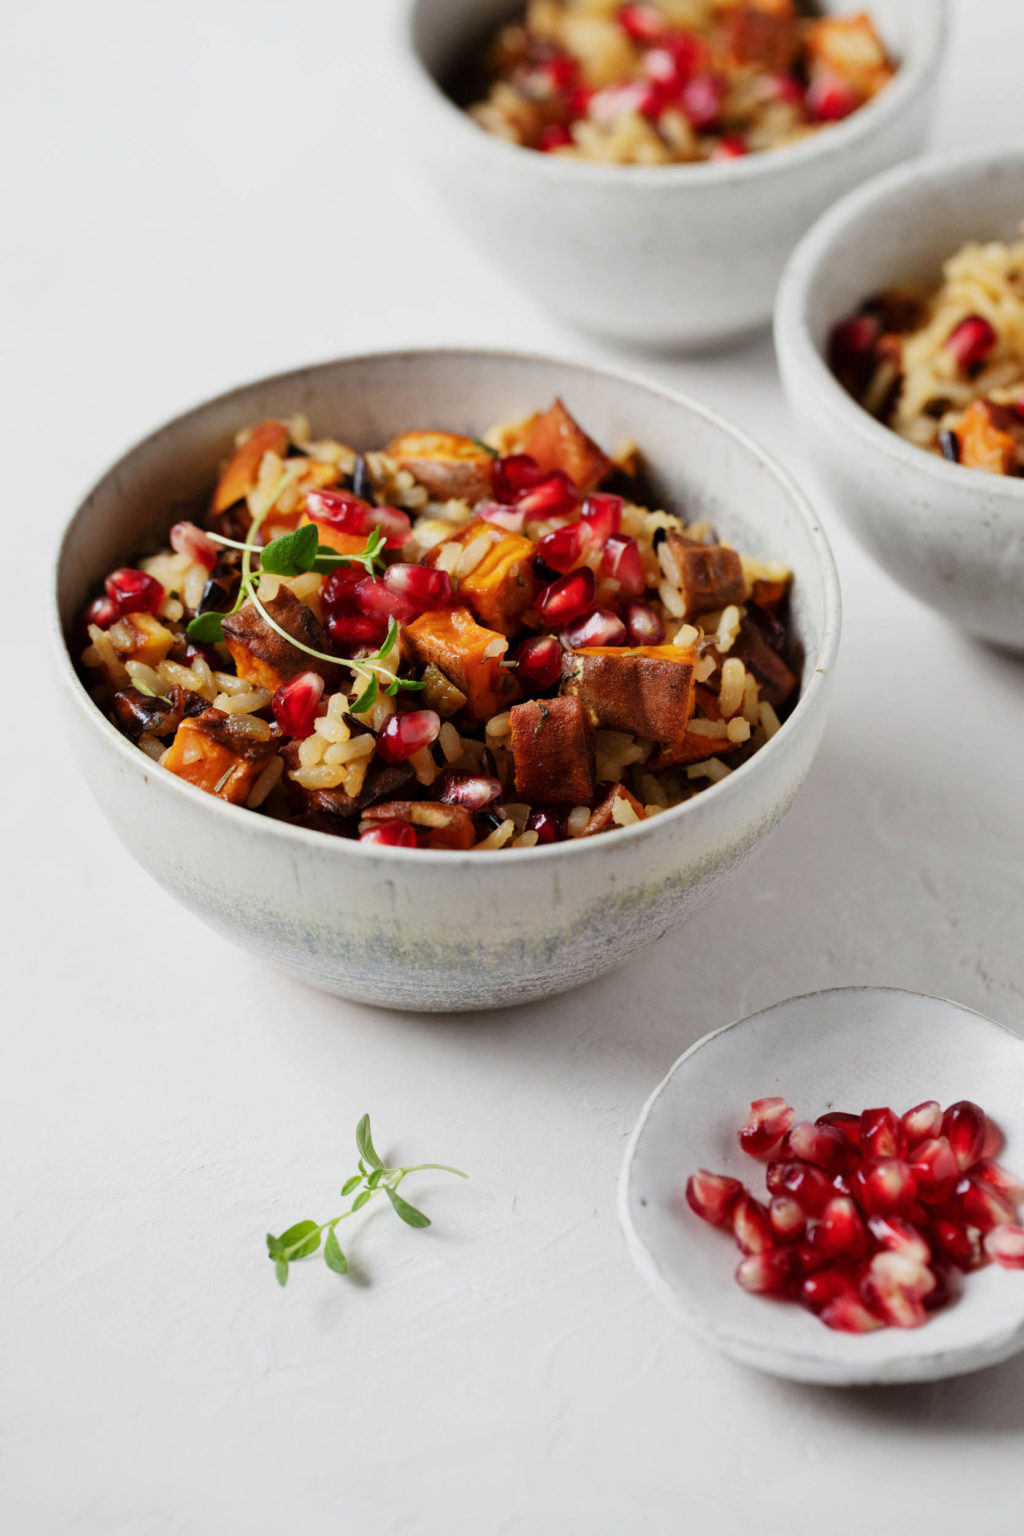 A few bowls of a vegan holiday side dish, with a small pinch bowl of pomegranate arils and fresh herbs nearby.